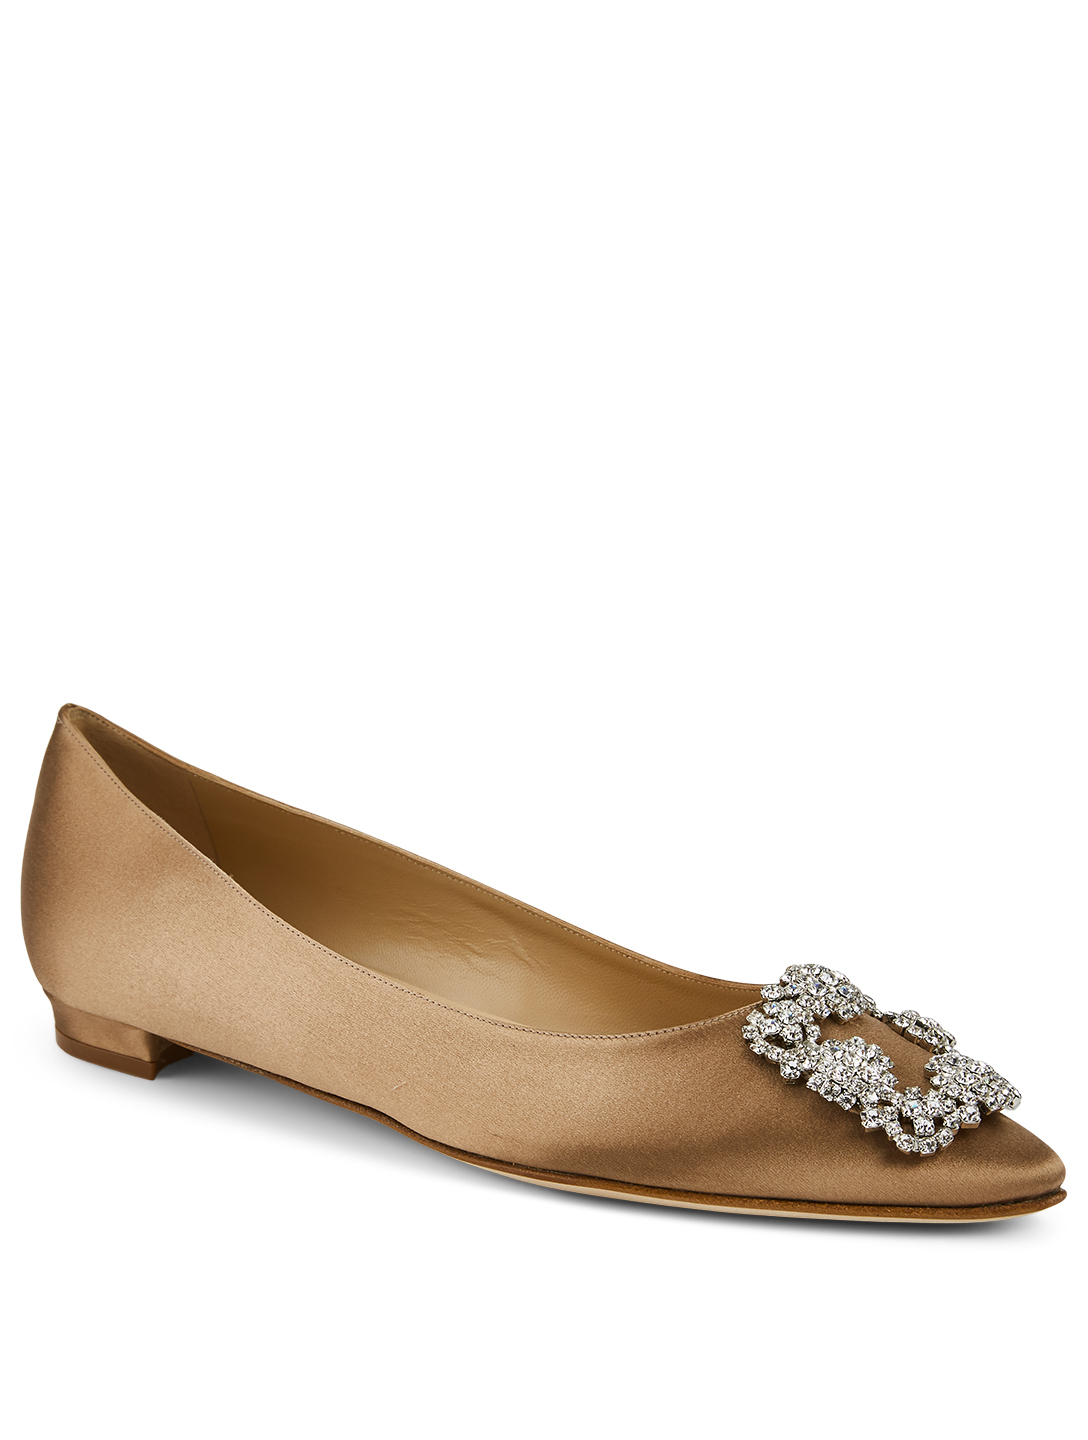 MANOLO BLAHNIK Hangisi Satin Flats Women's Brown